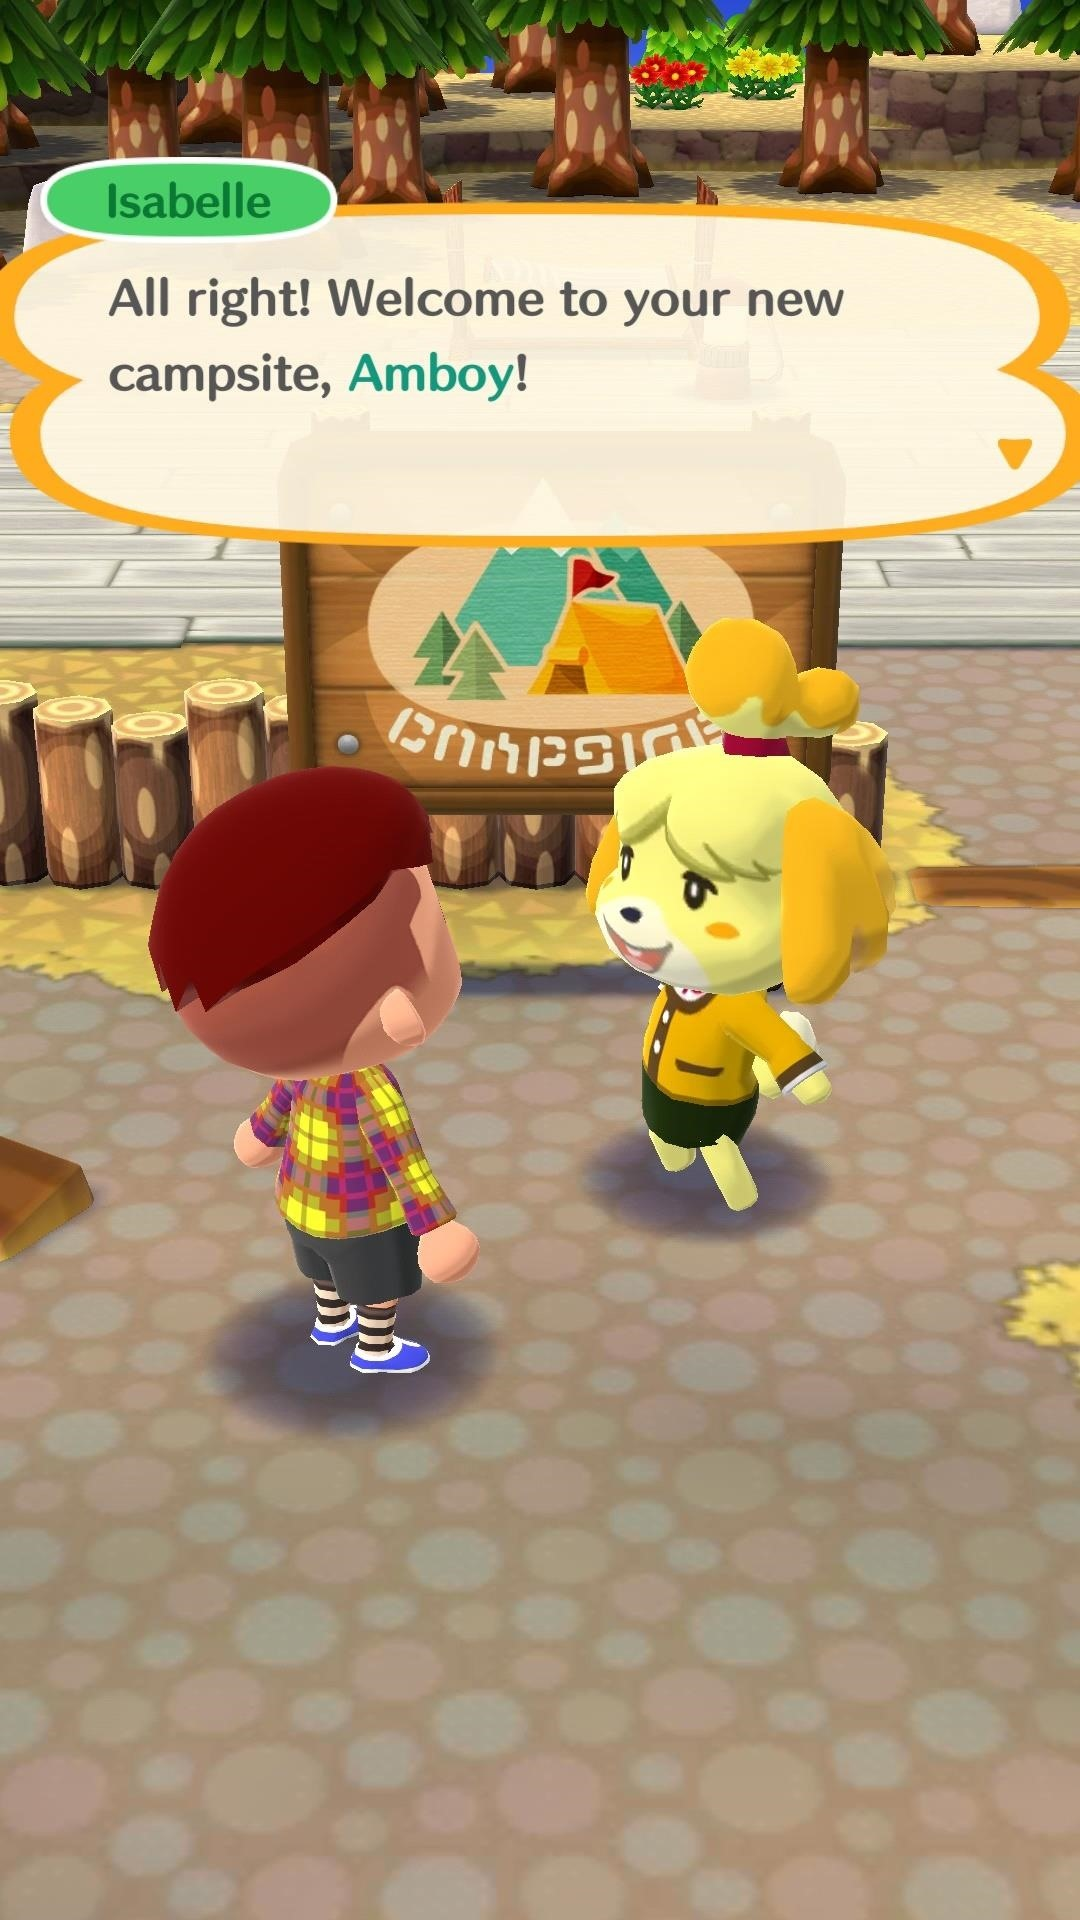 How to Play Nintendo's Animal Crossing: Pocket Camp on Your iPhone or Android Right Now